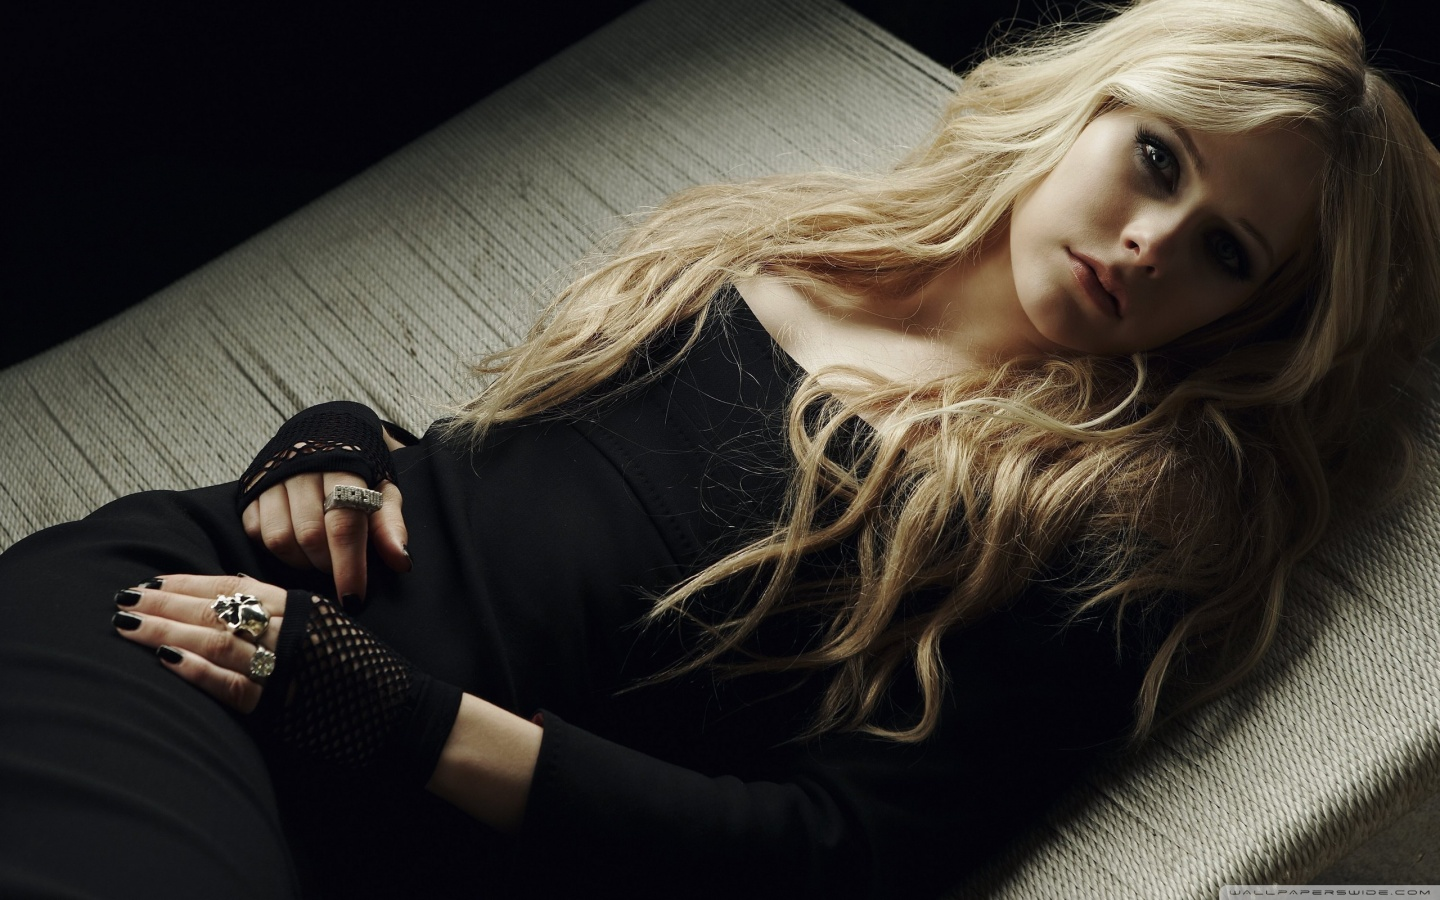 http://2.bp.blogspot.com/-rNhl8MotVDk/TkMWcRBBswI/AAAAAAAACOo/WQbZ8Zr7O7I/s1600/avril_lavigne_in_a_black_dress-wallpaper-1440x900.jpg